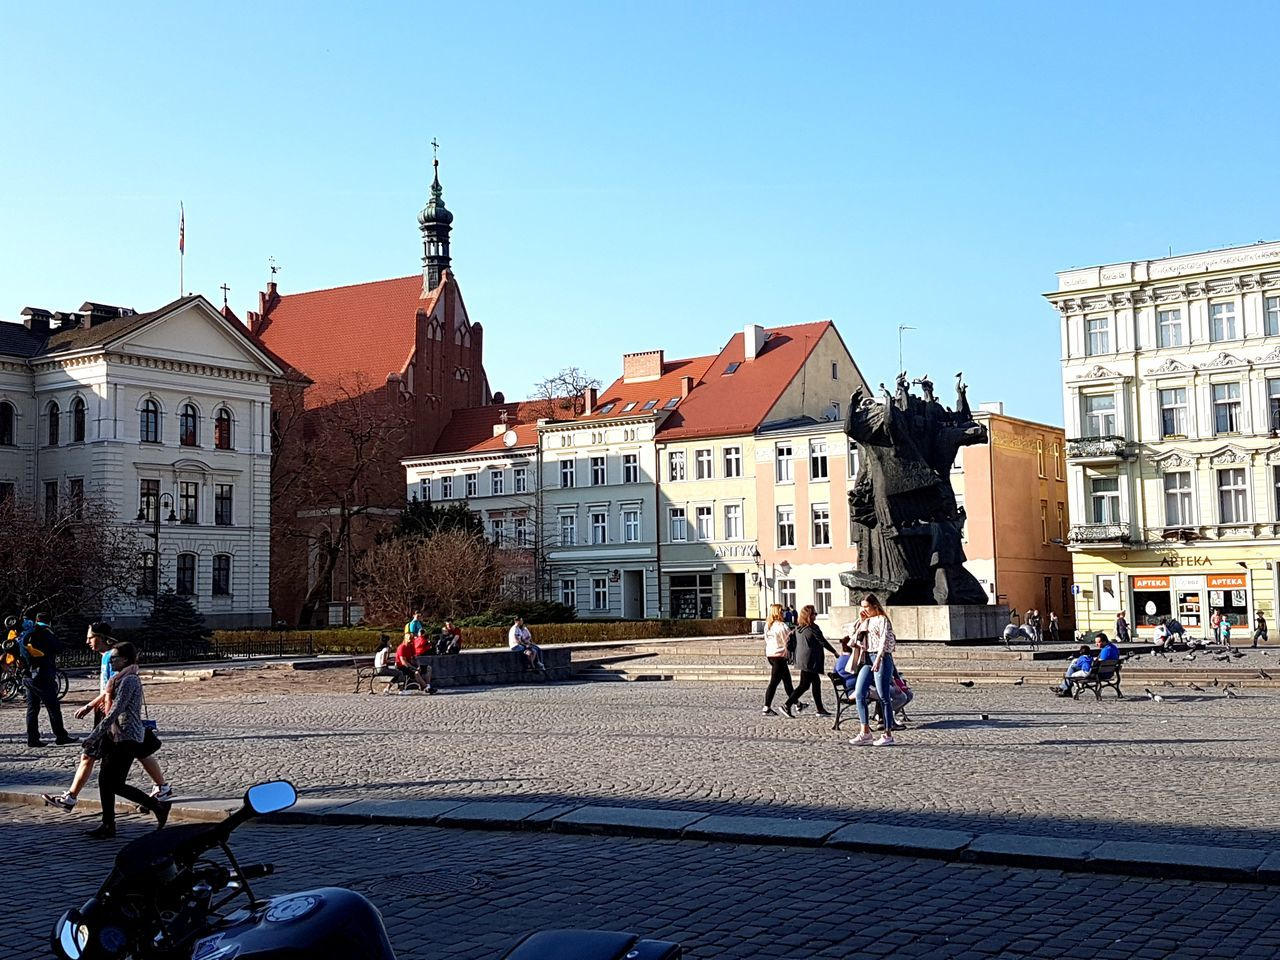 Building Exterior Travel Destinations City Architecture Large Group Of People Vacations People Outdoors Day Poland Bydgoszcz Place Of Worship Christmas Medieval